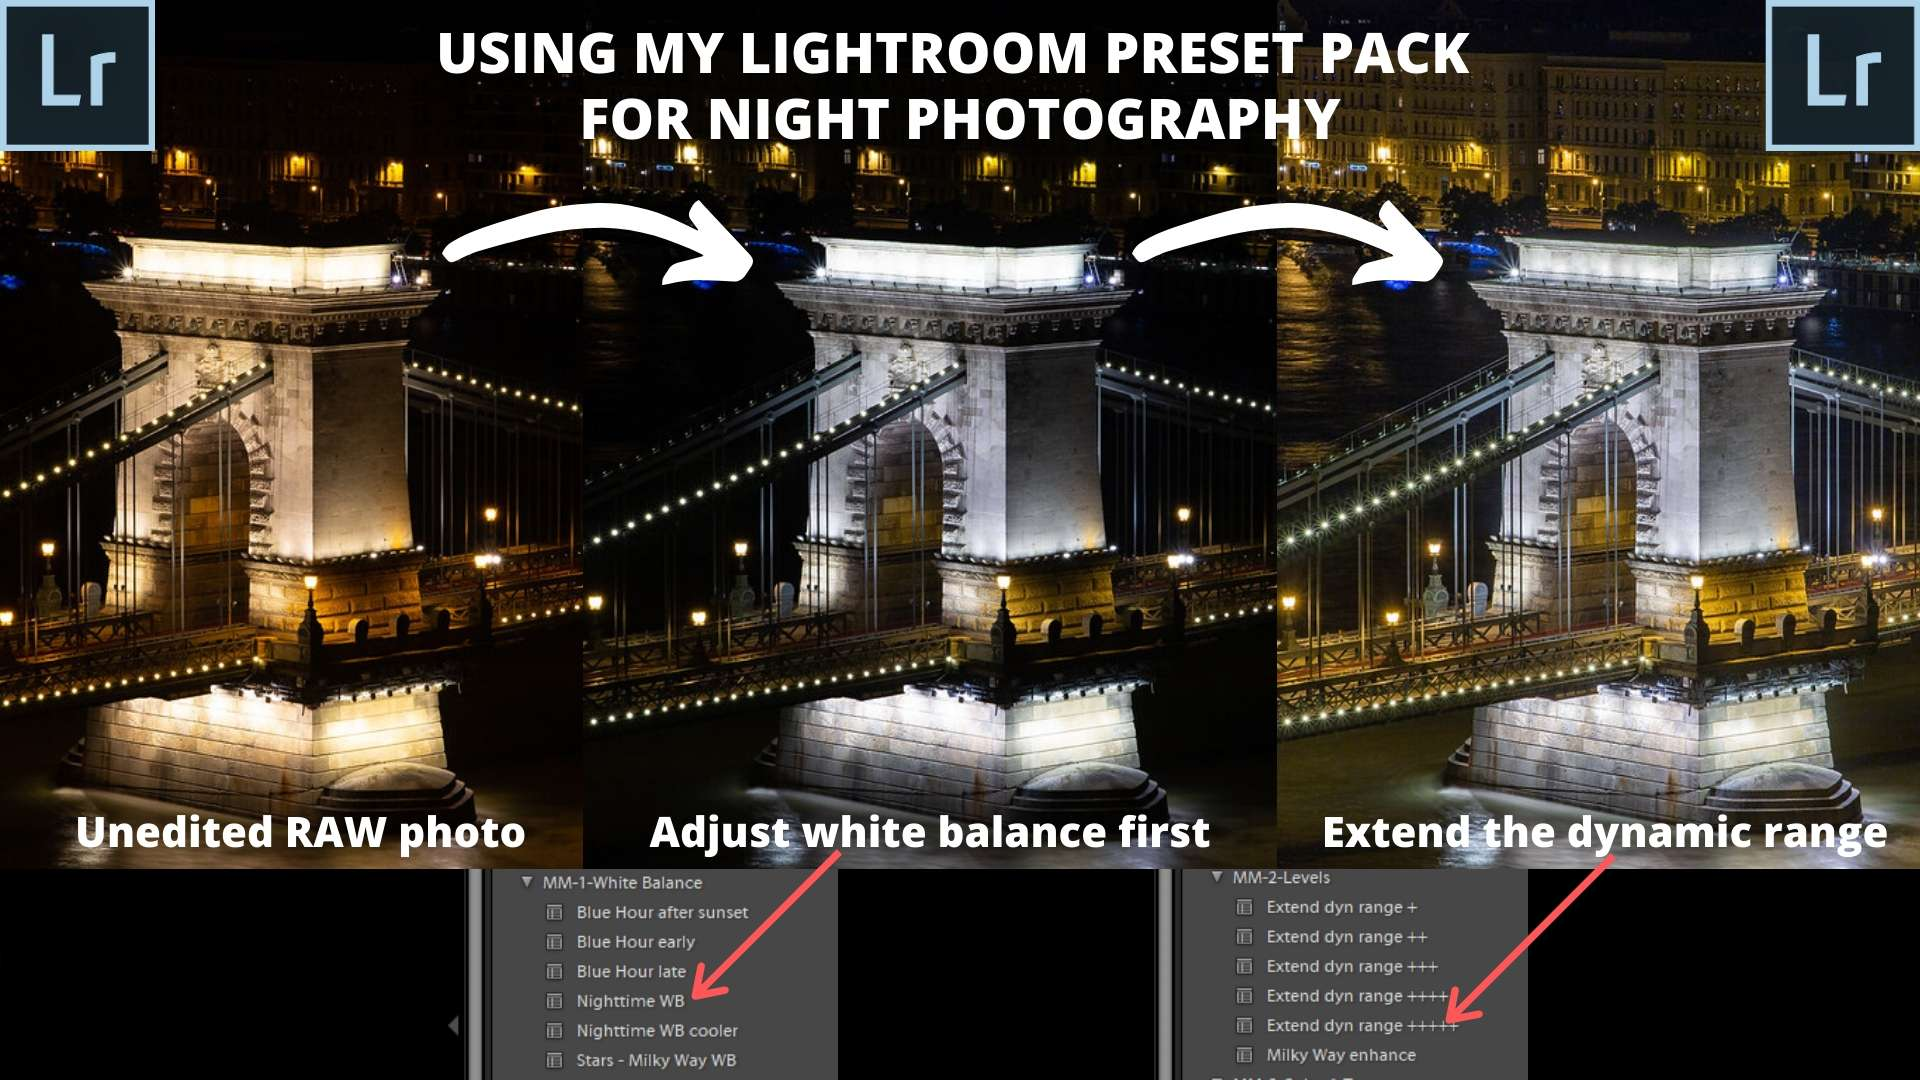 lightroom preset pack for night photography